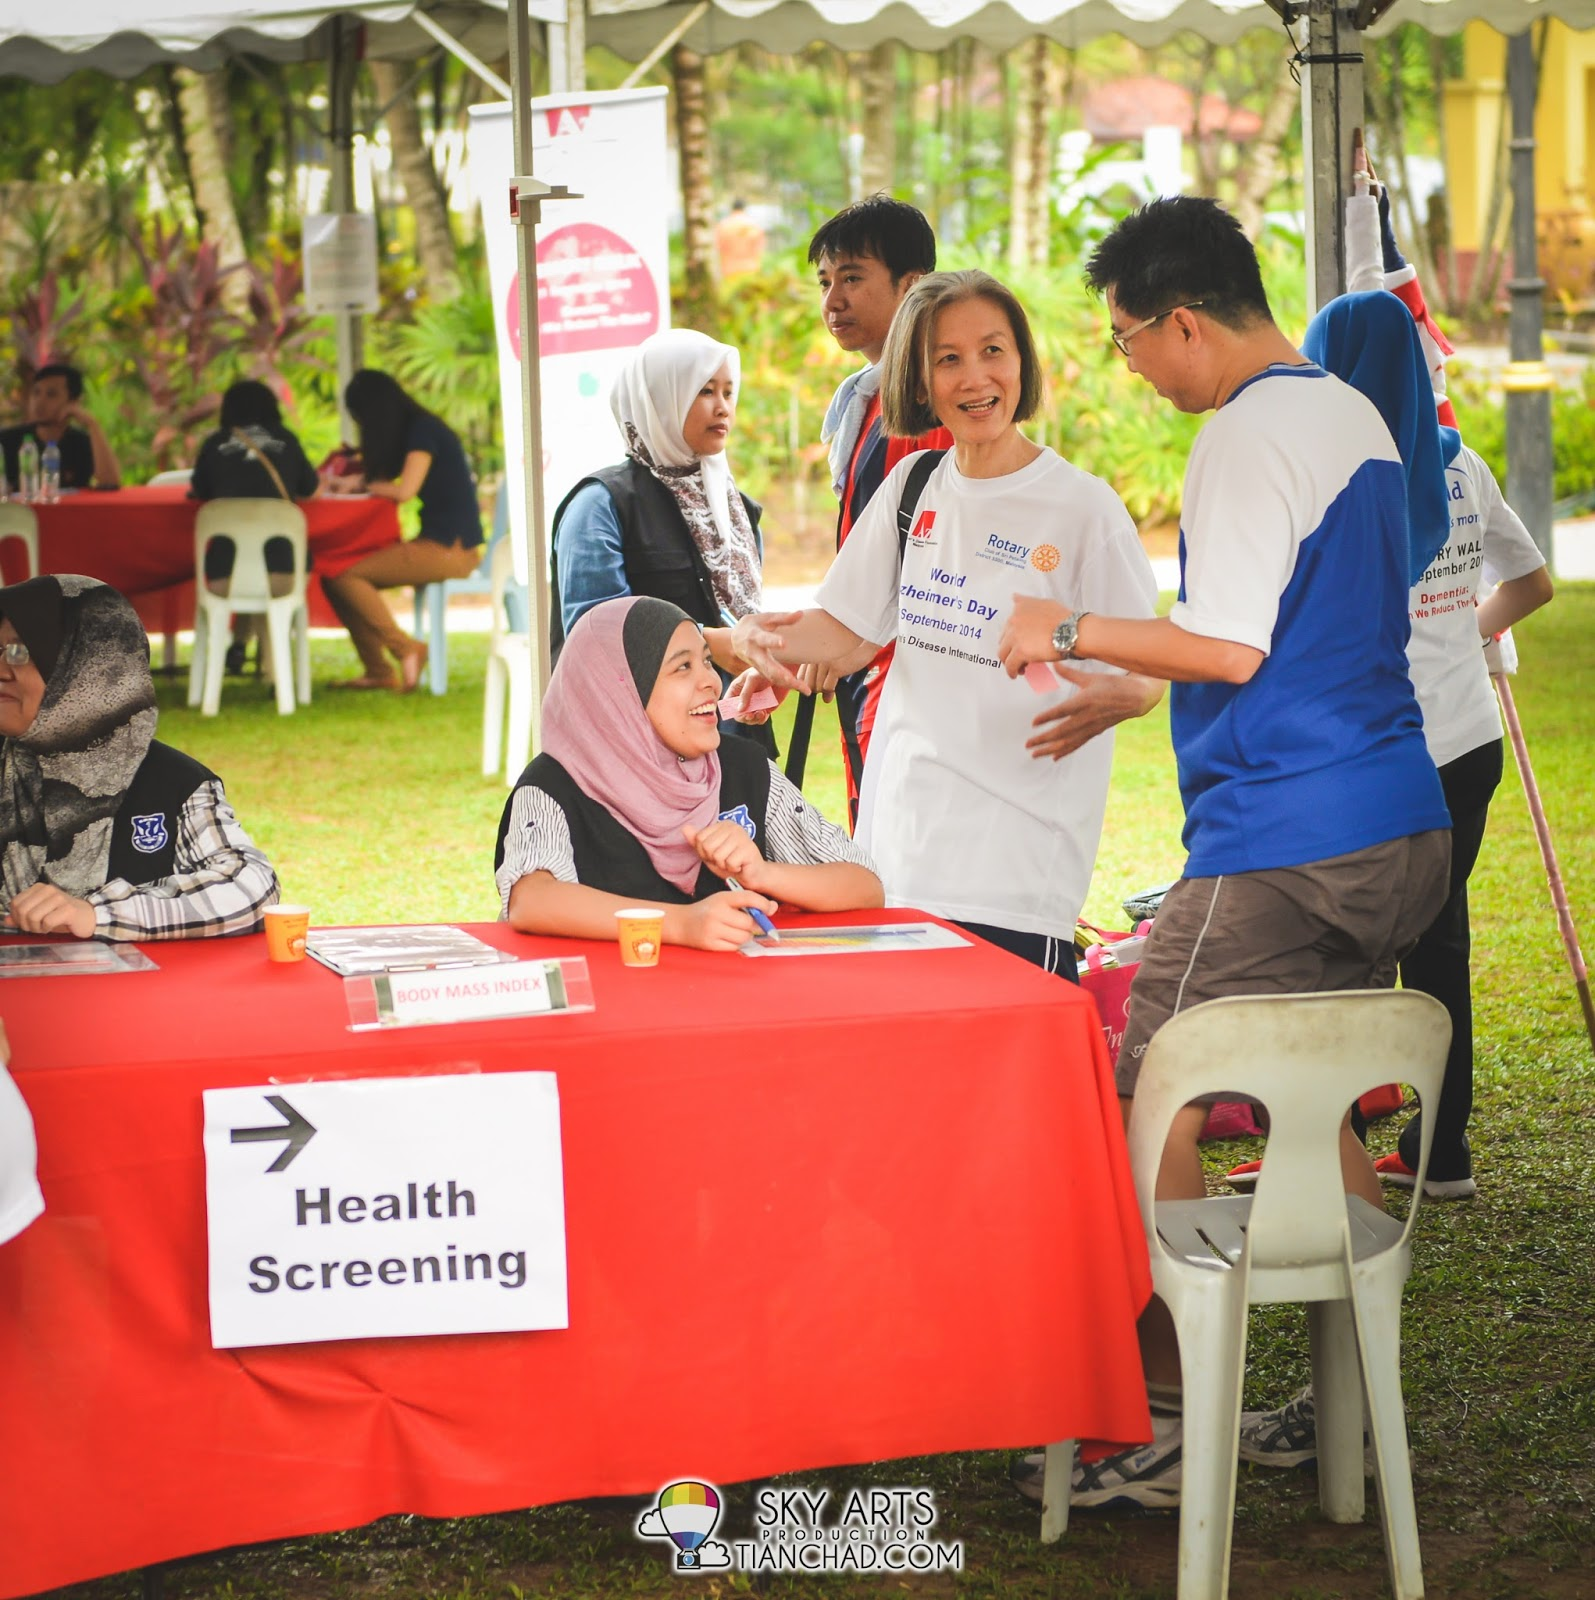 Free Health Screening during the morning walk